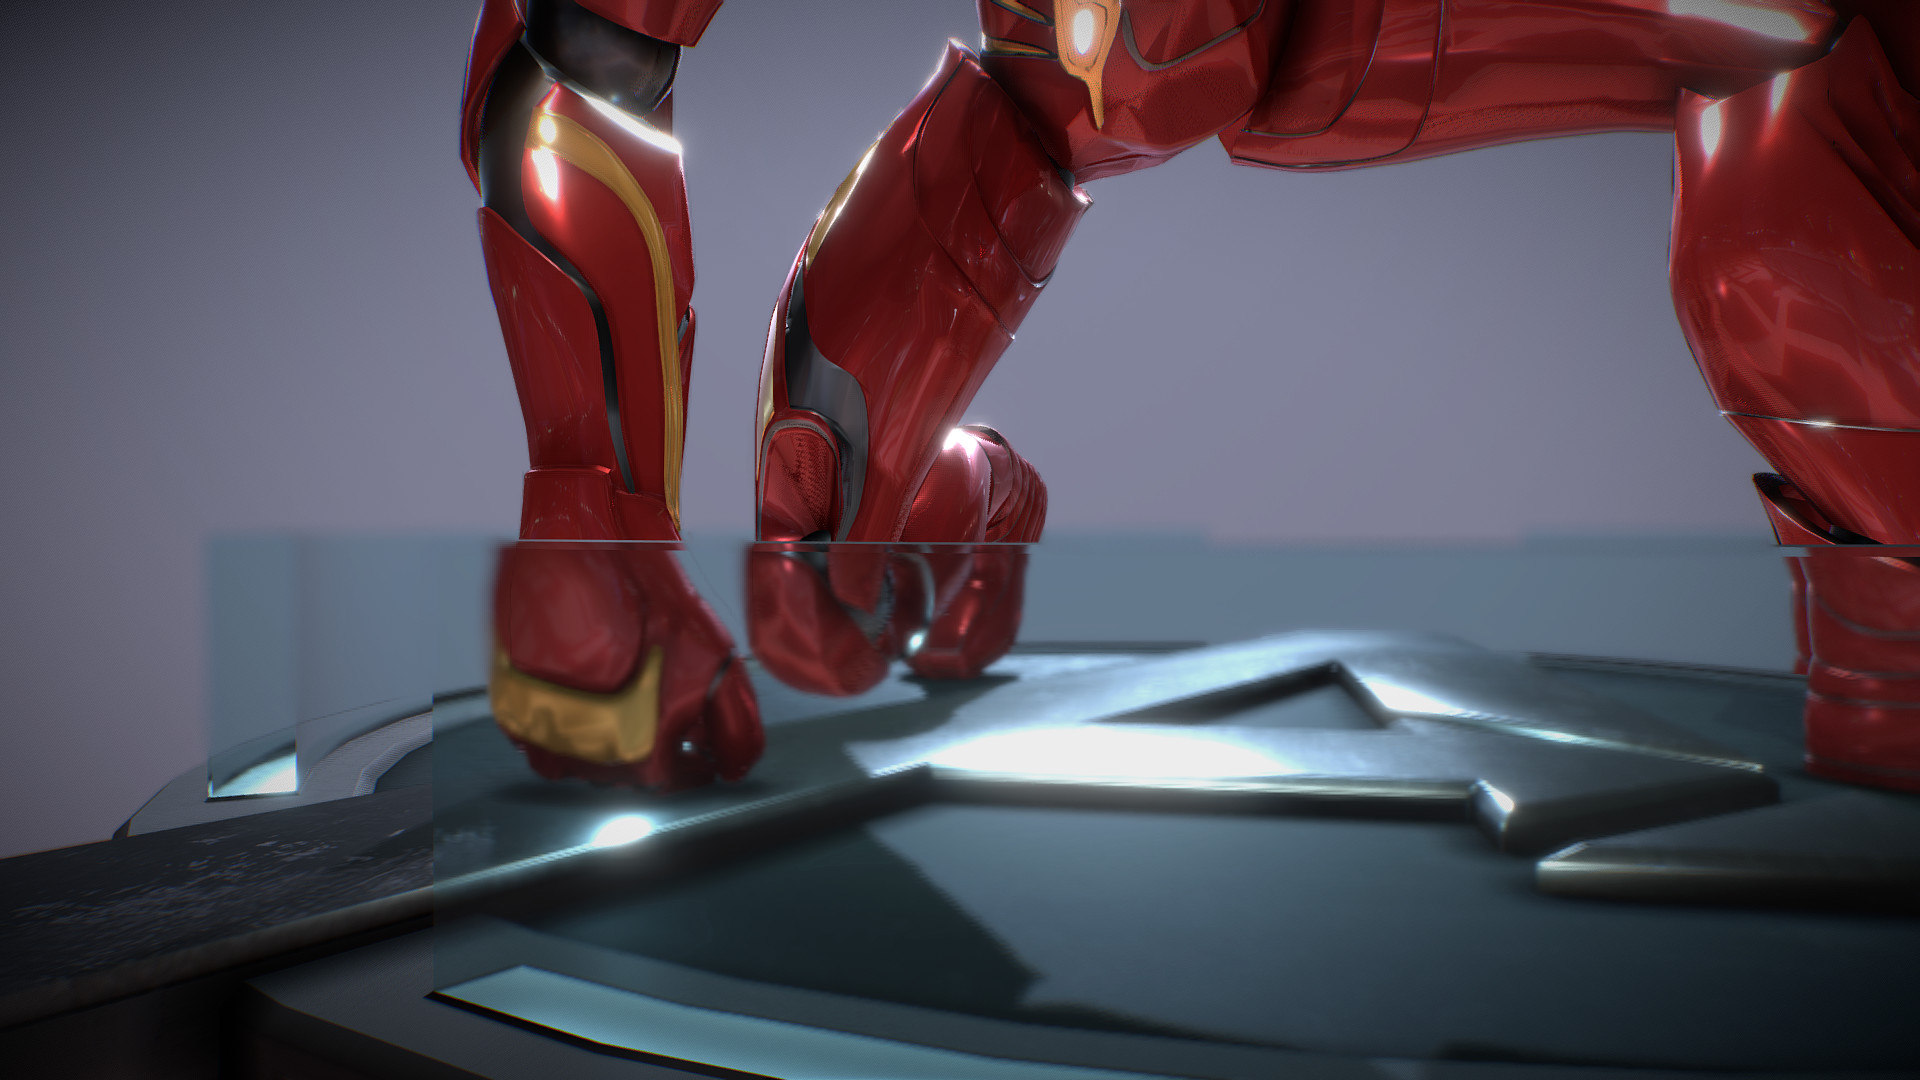 Iron man vr esrb rating details story and the word ass is spoken